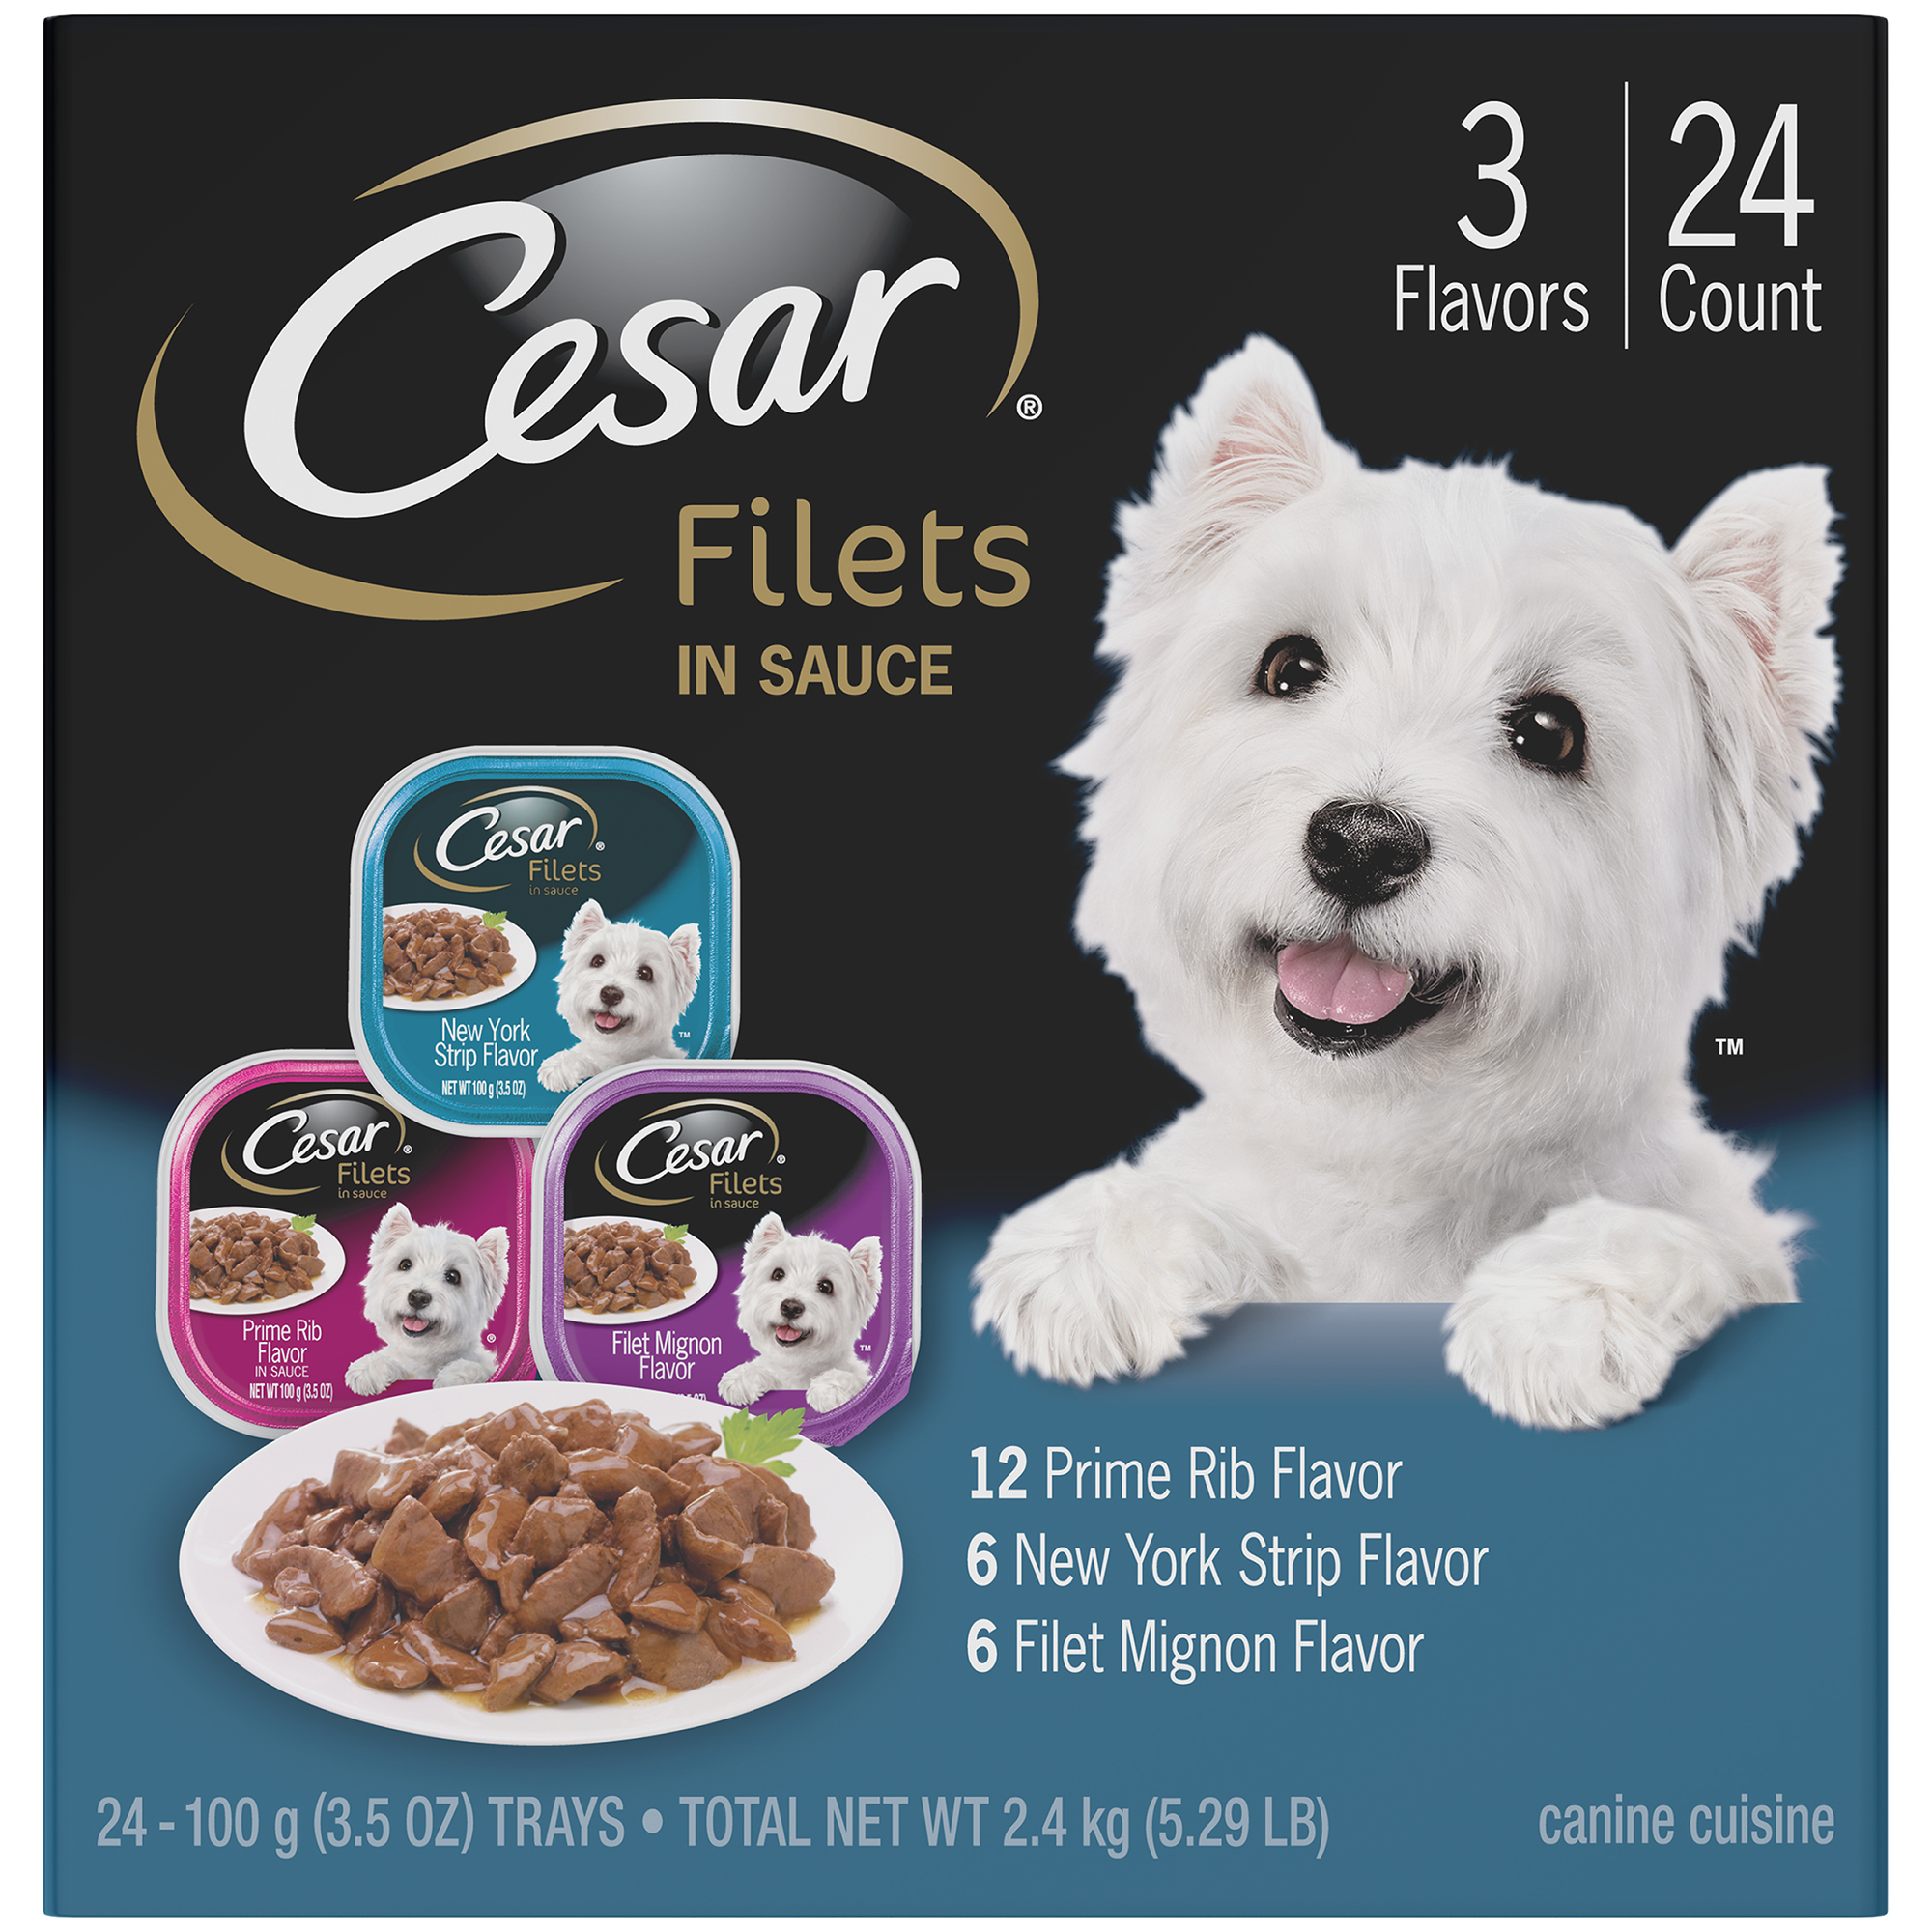 CESAR GOURMET FILETS Wet Dog Food Filet Mignon, New York Strip, and Prime Rib Flavors Variety Pack, (24) 3.5 oz. Trays